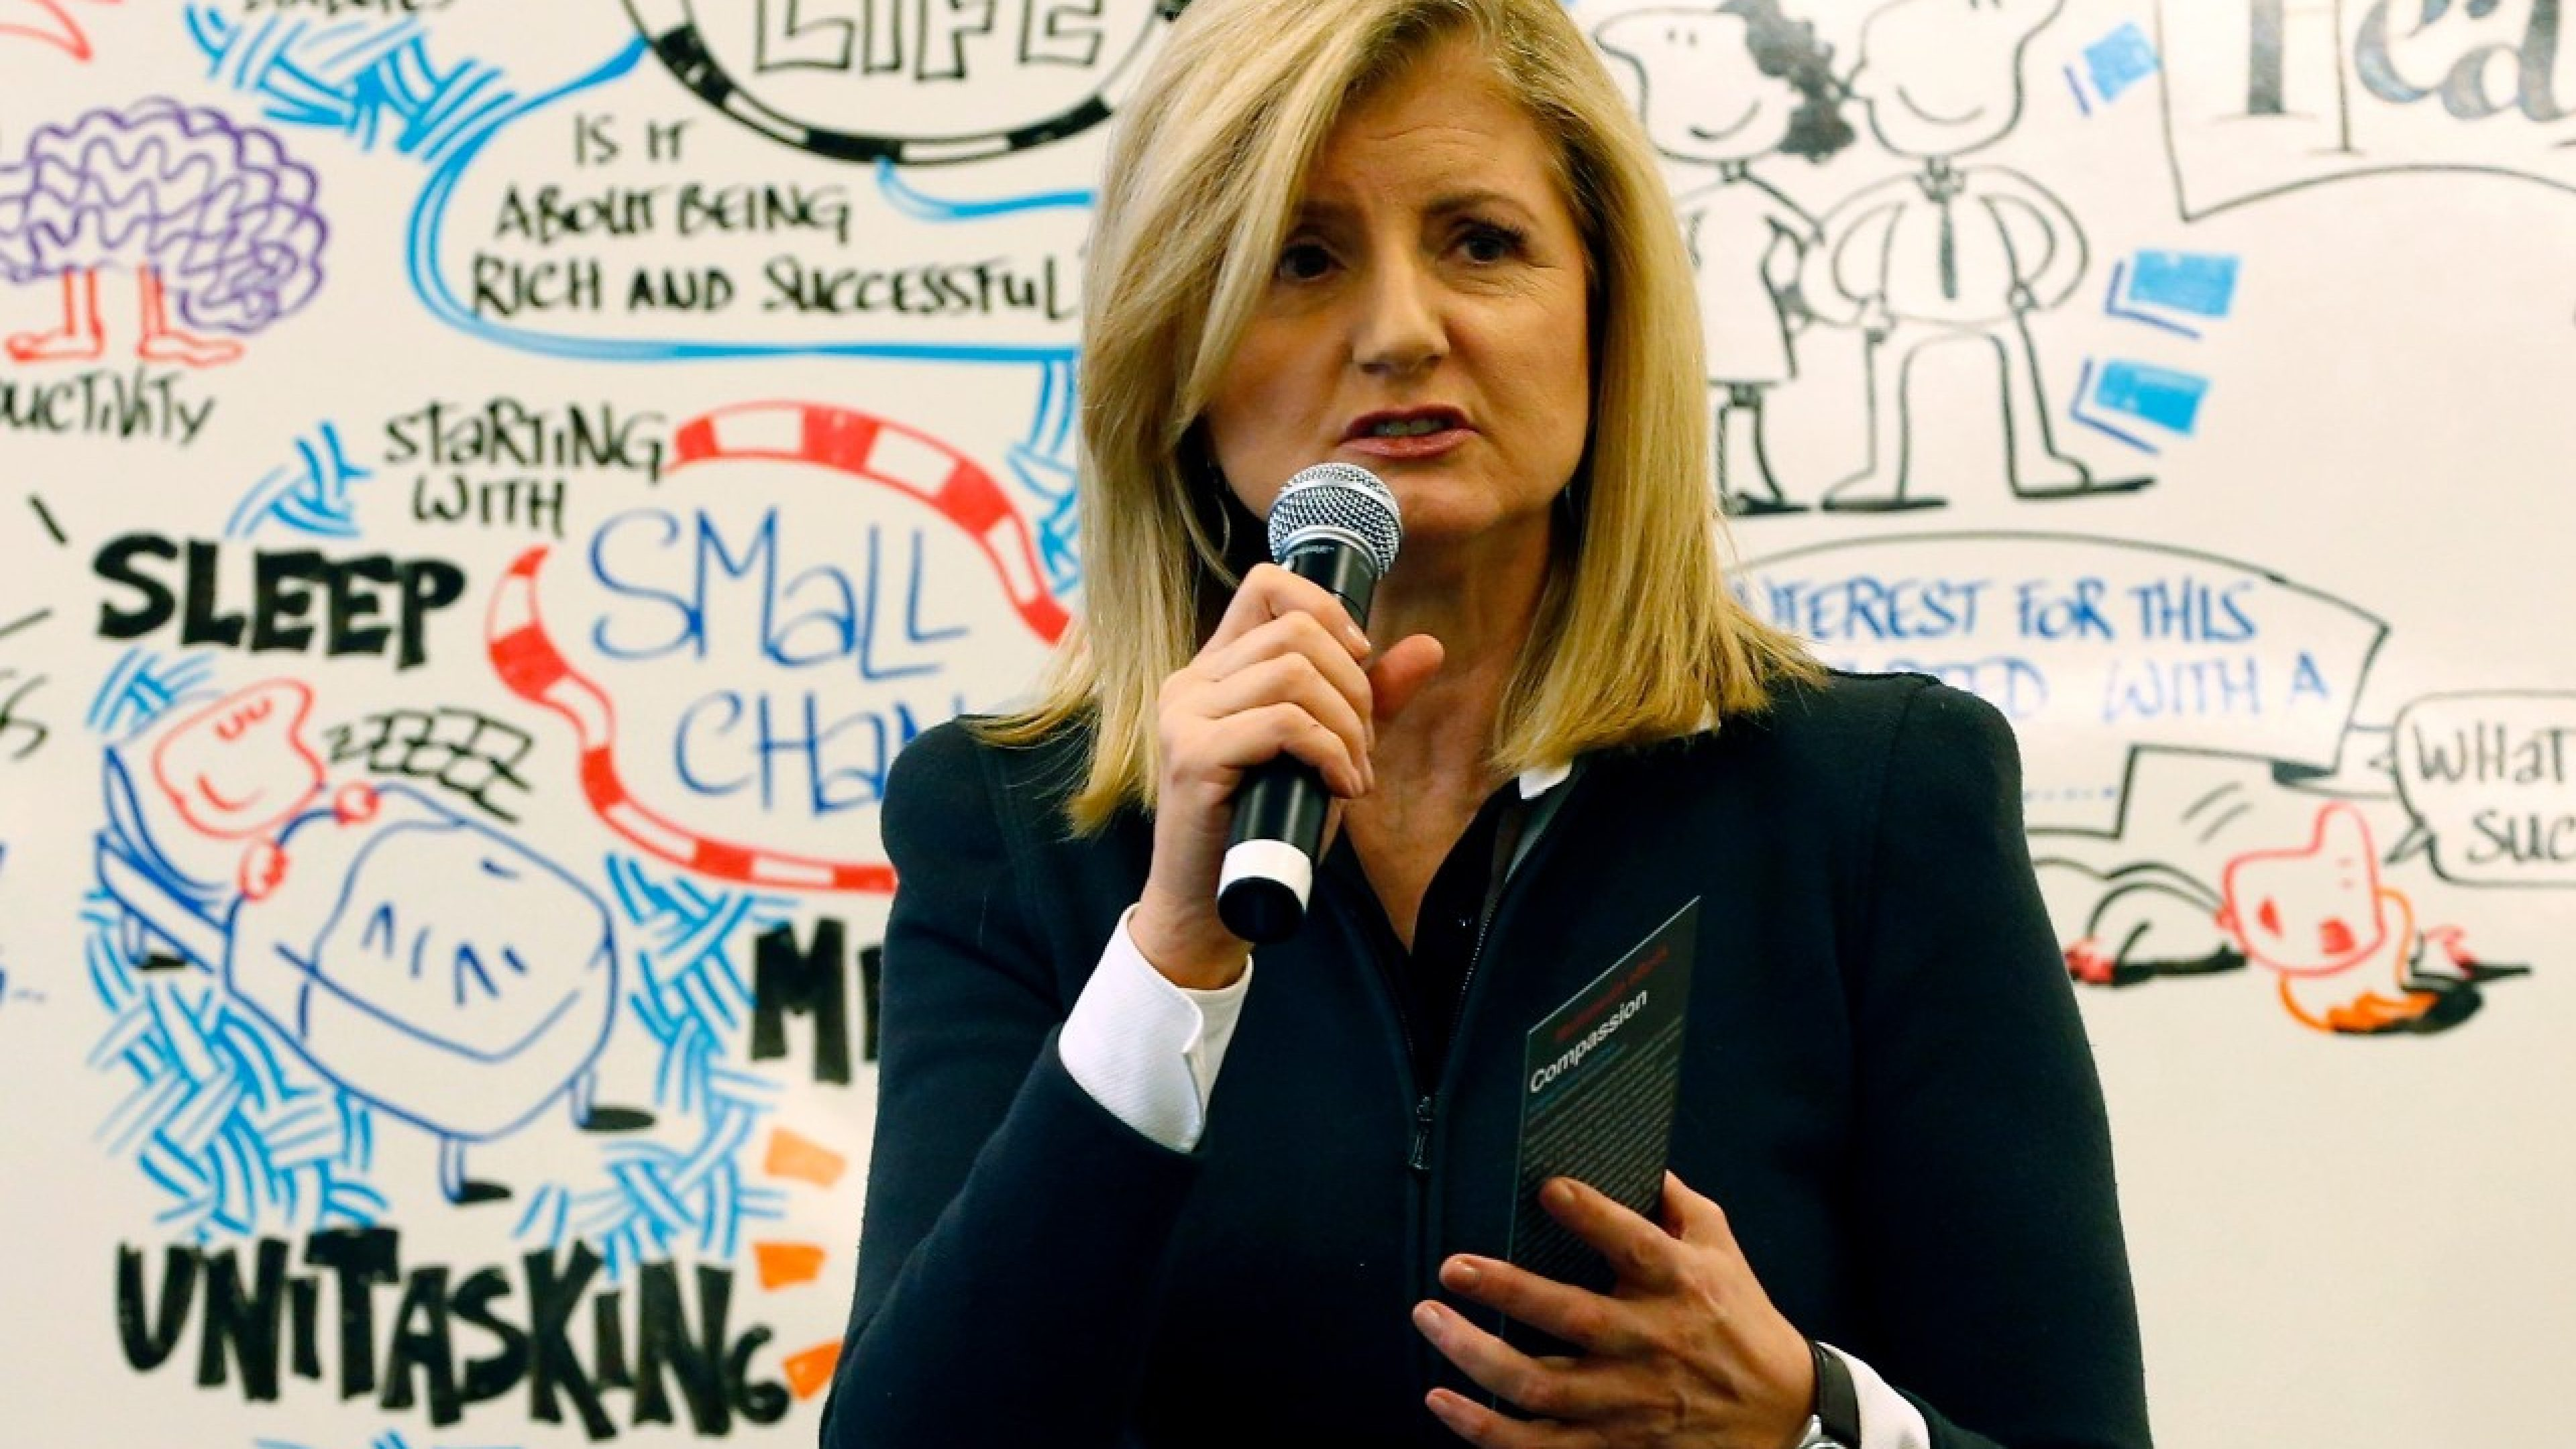 Arianna Huffington, president and Editor-in-Chief of The Huffington Post Media Group speaks during a session at the annual meeting of the World Economic Forum (WEF) in Davos January 24, 2014.                                                                 REUTERS/Ruben Sprich (SWITZERLAND  - Tags: POLITICS BUSINESS)   - RTX17SDB